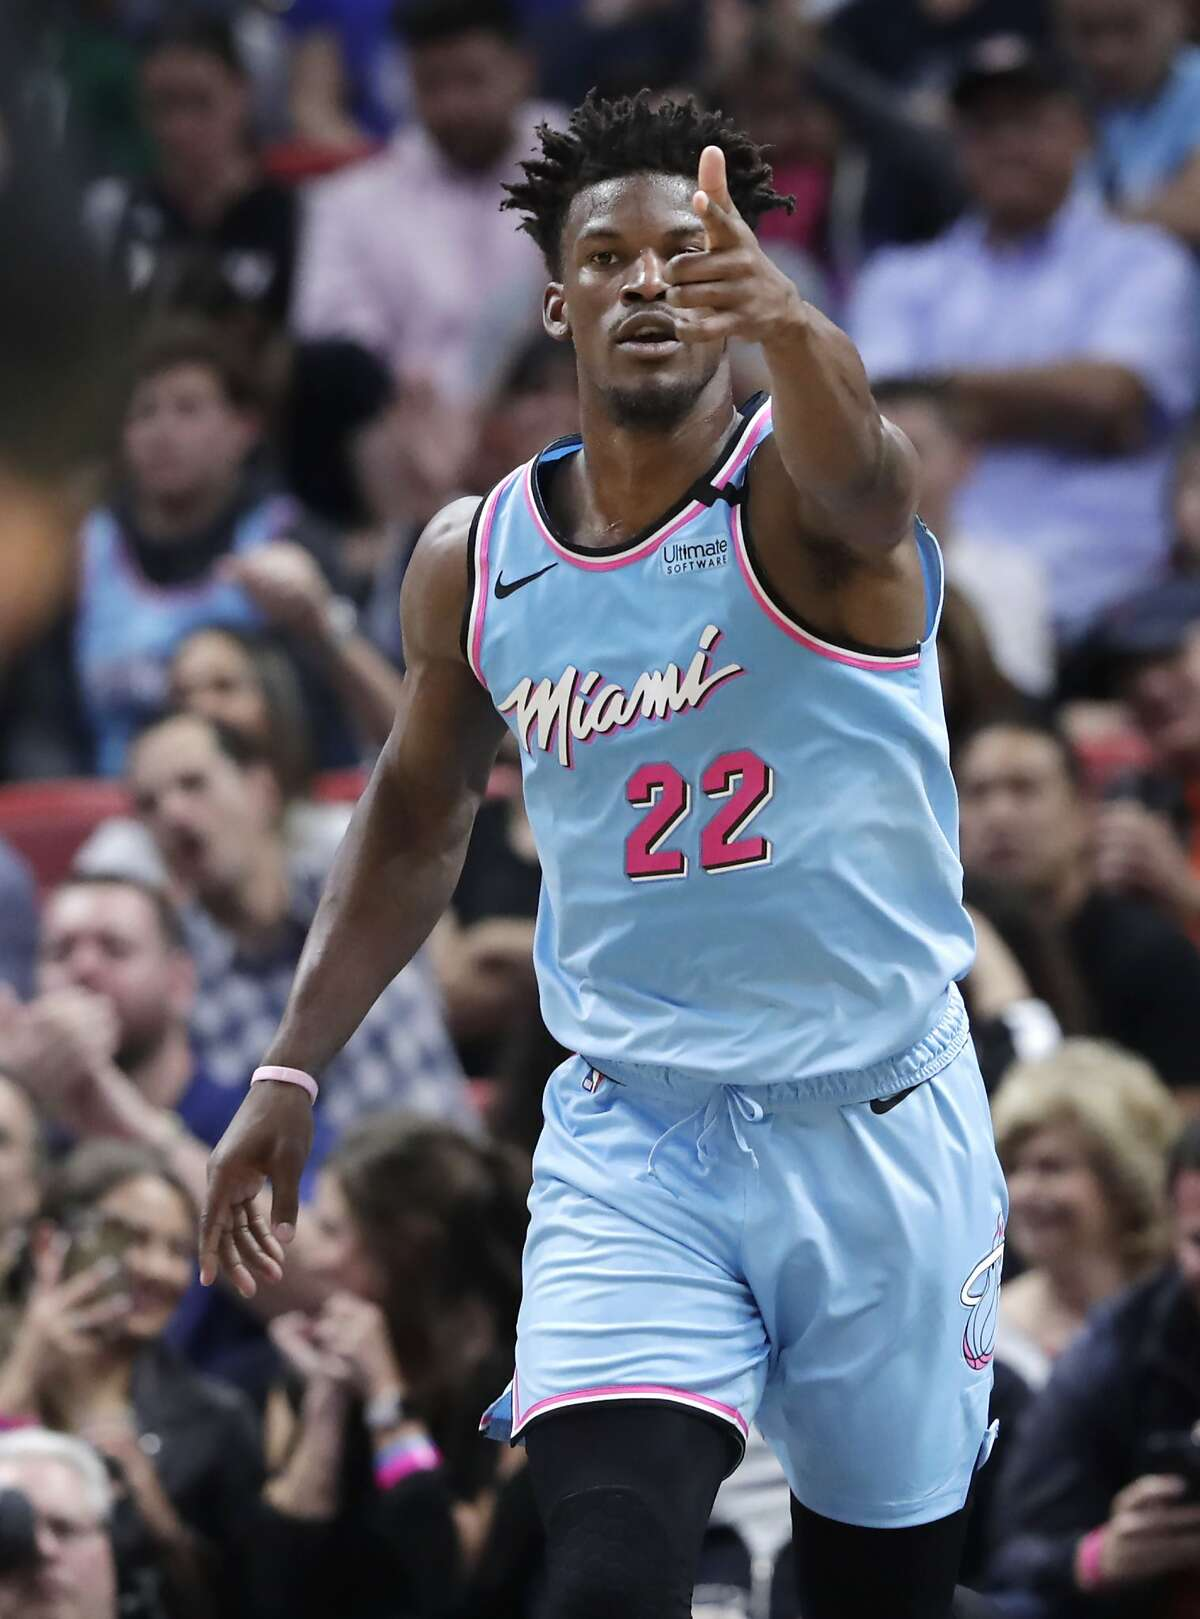 Miami Heat forward Jimmy Butler reacts after scoring during the first half of an NBA basketball game against the Philadelphia 76ers, Monday, Feb. 3, 2020, in Miami. (AP Photo/Lynne Sladky)